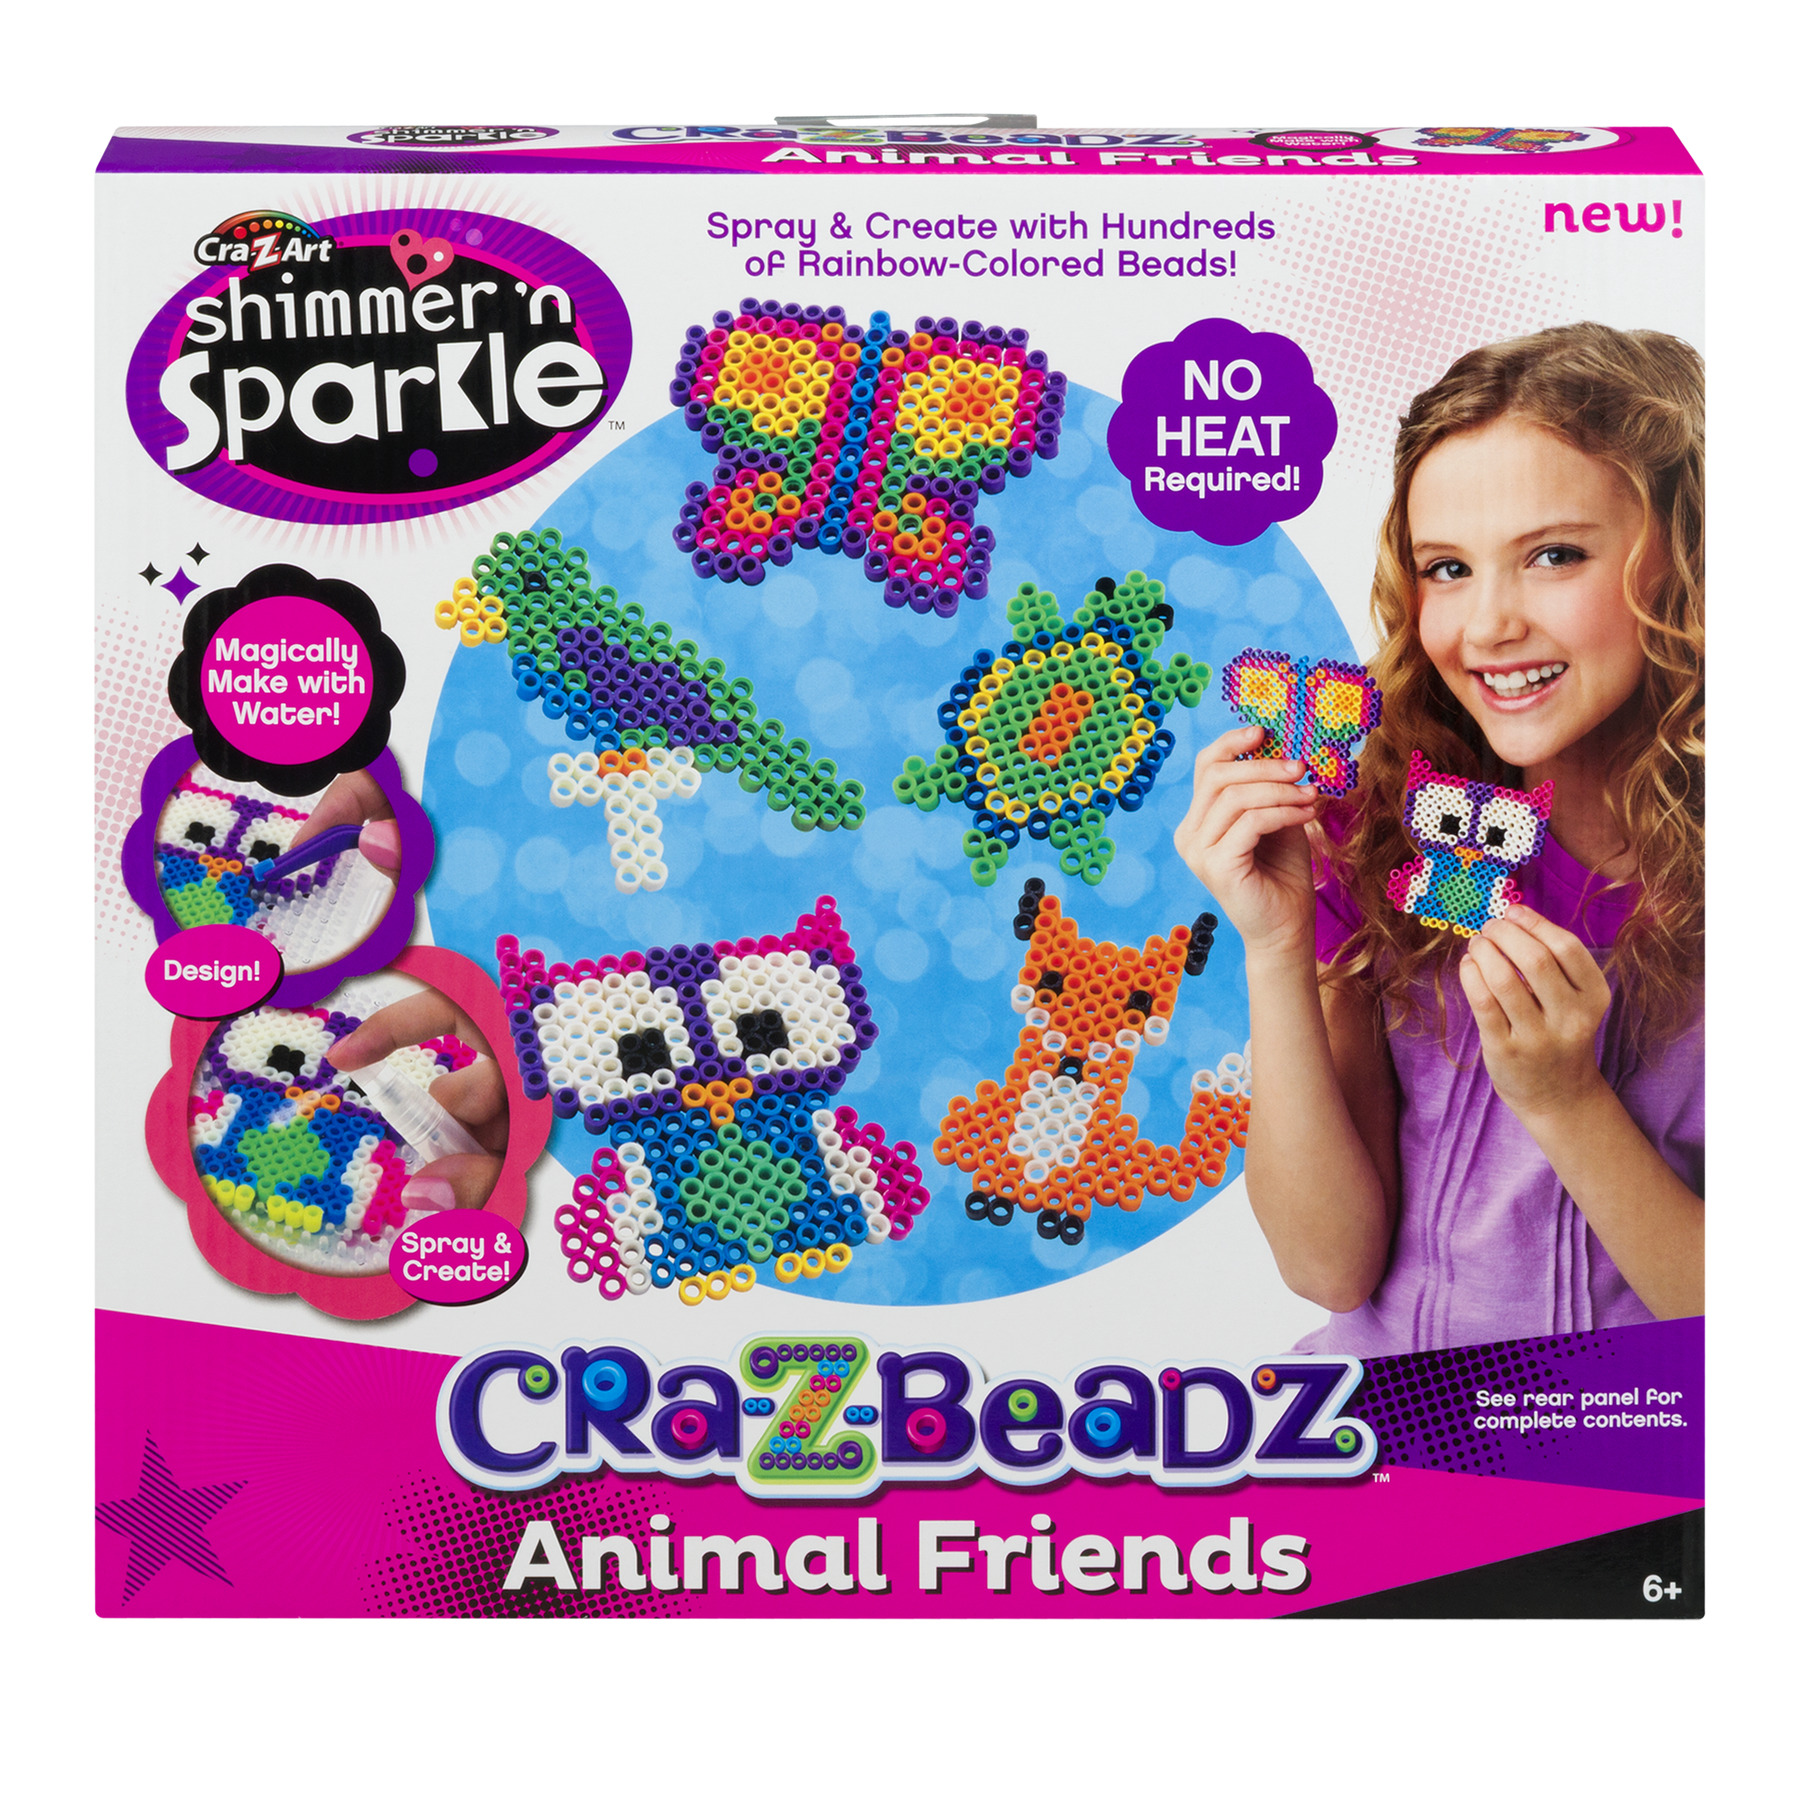 Cra-Z-Art Shimmer 'N Sparkle Cra-Z-Beadz Animal Friends, 1.0 CT by LaRose Industries, LLC